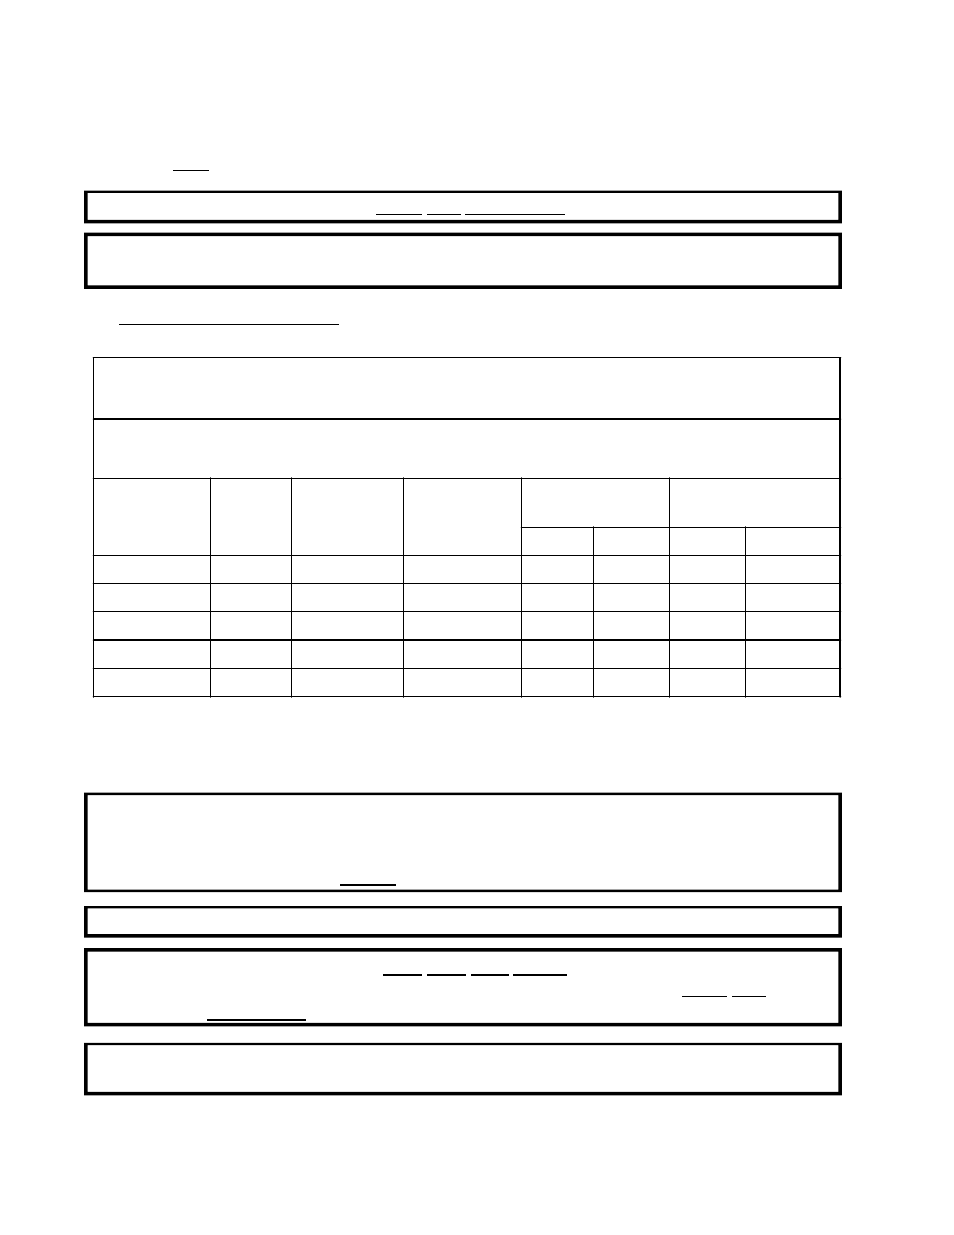 medium resolution of mlg 96d electrical service specifications per dryer american dryer corp ml 96d user manual page 24 43